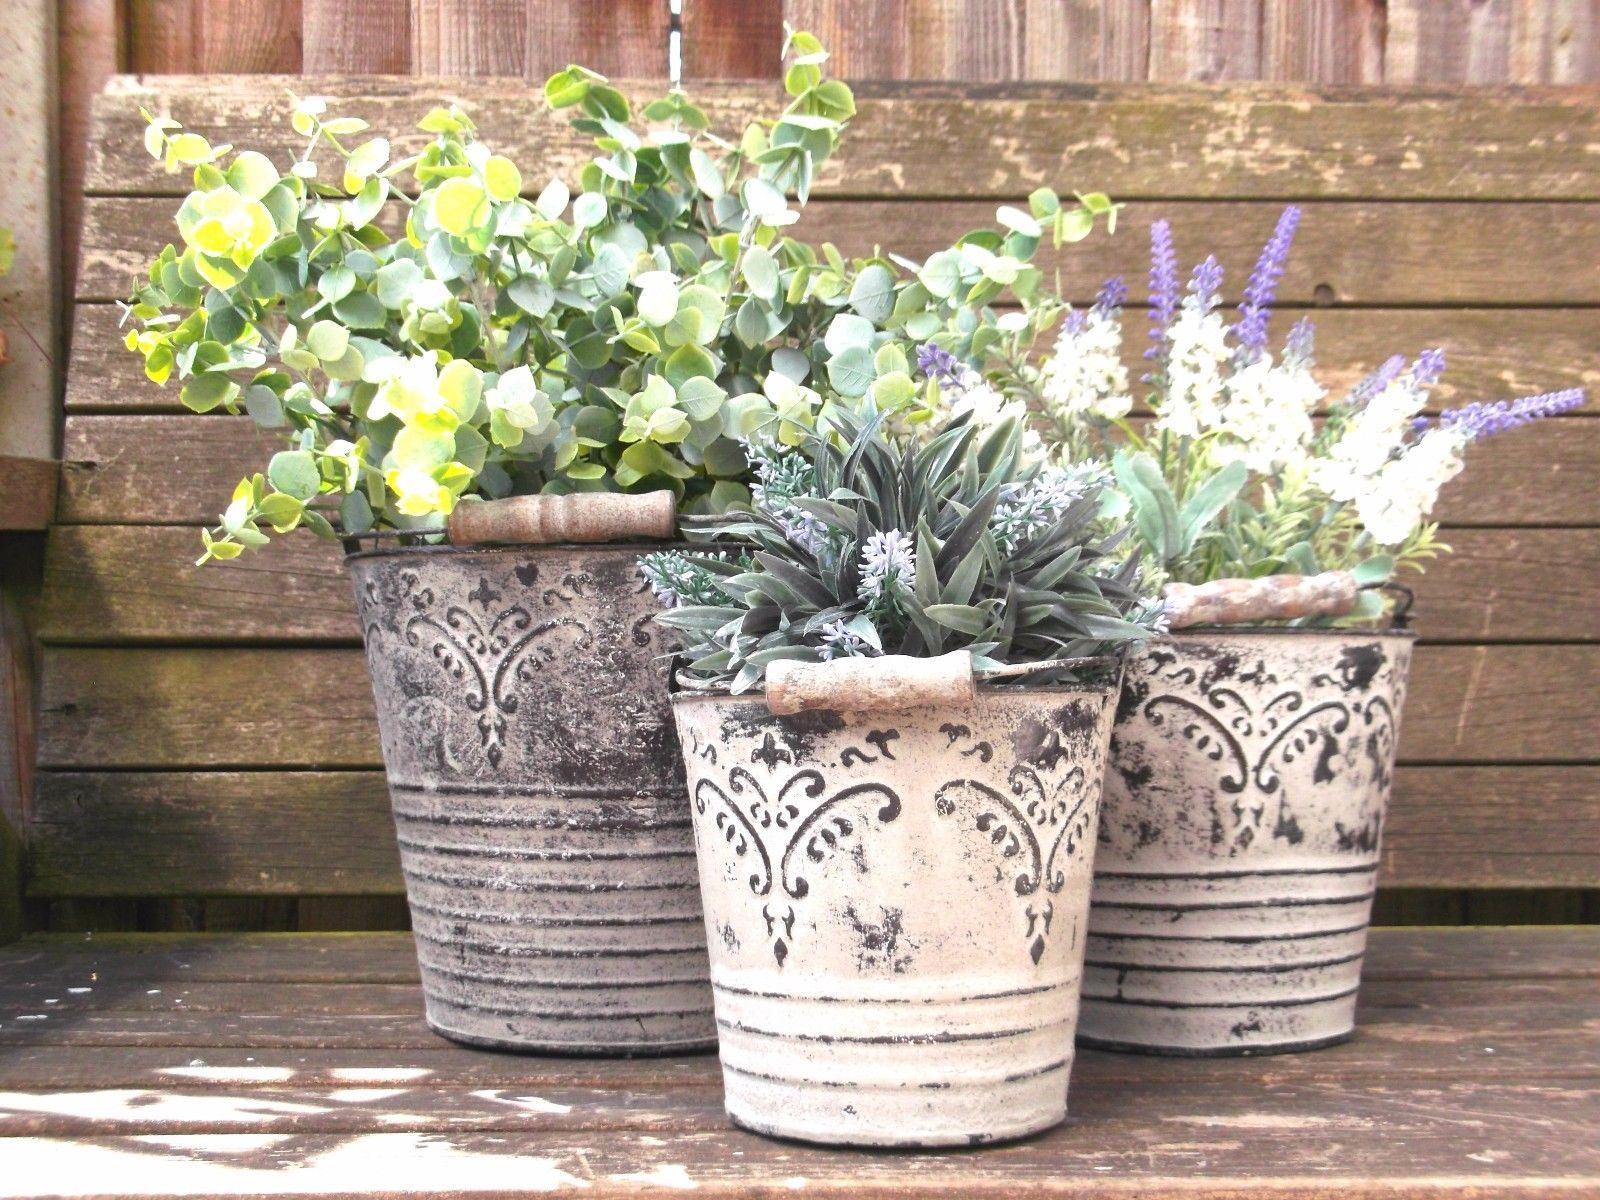 French Vintage Style Set of 3 Metal Garden Planters Containers Flower Pots Vases